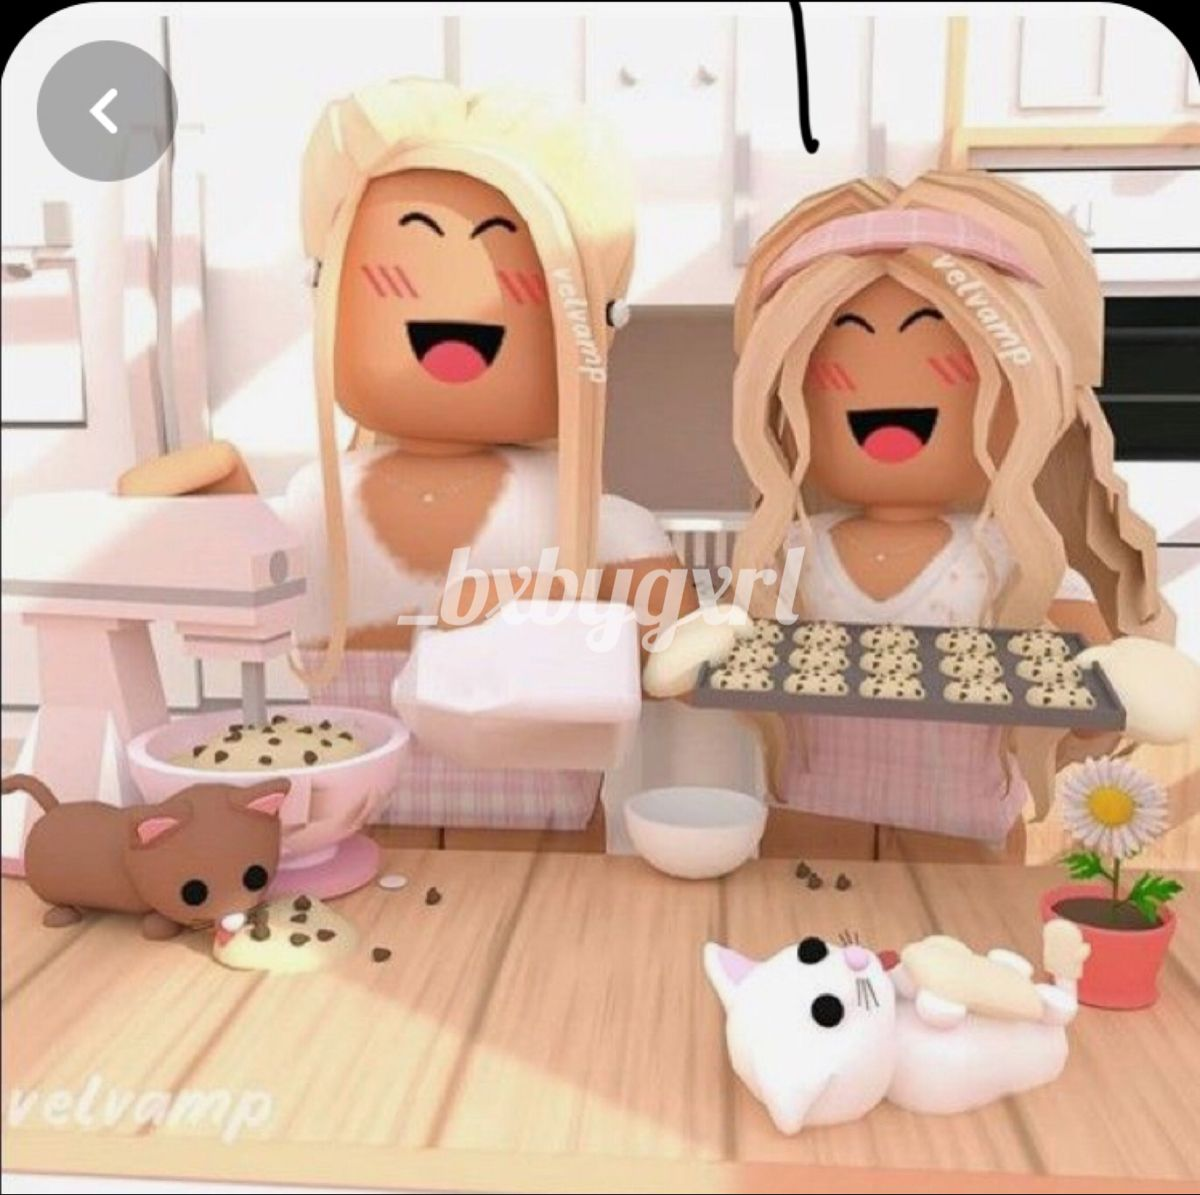 Baking Cookies With Bff Roblox Pictures Roblox Animation Cute Tumblr Wallpaper